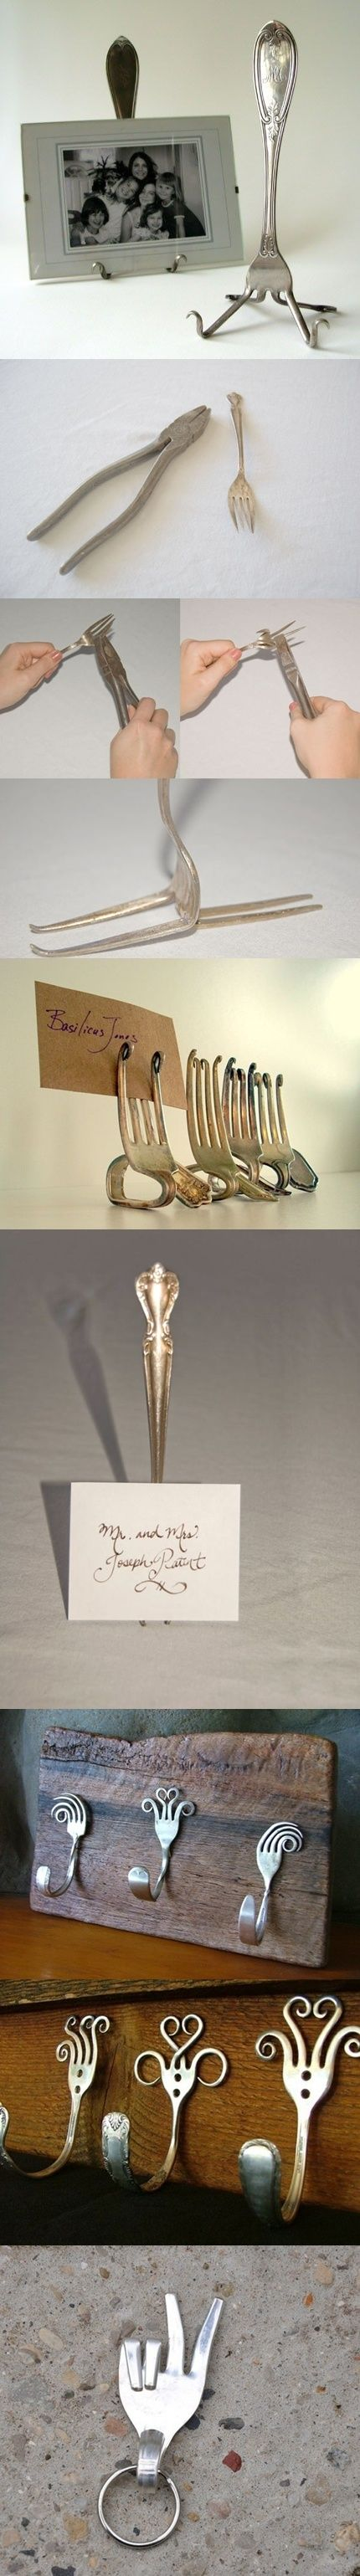 Recycle old forks!